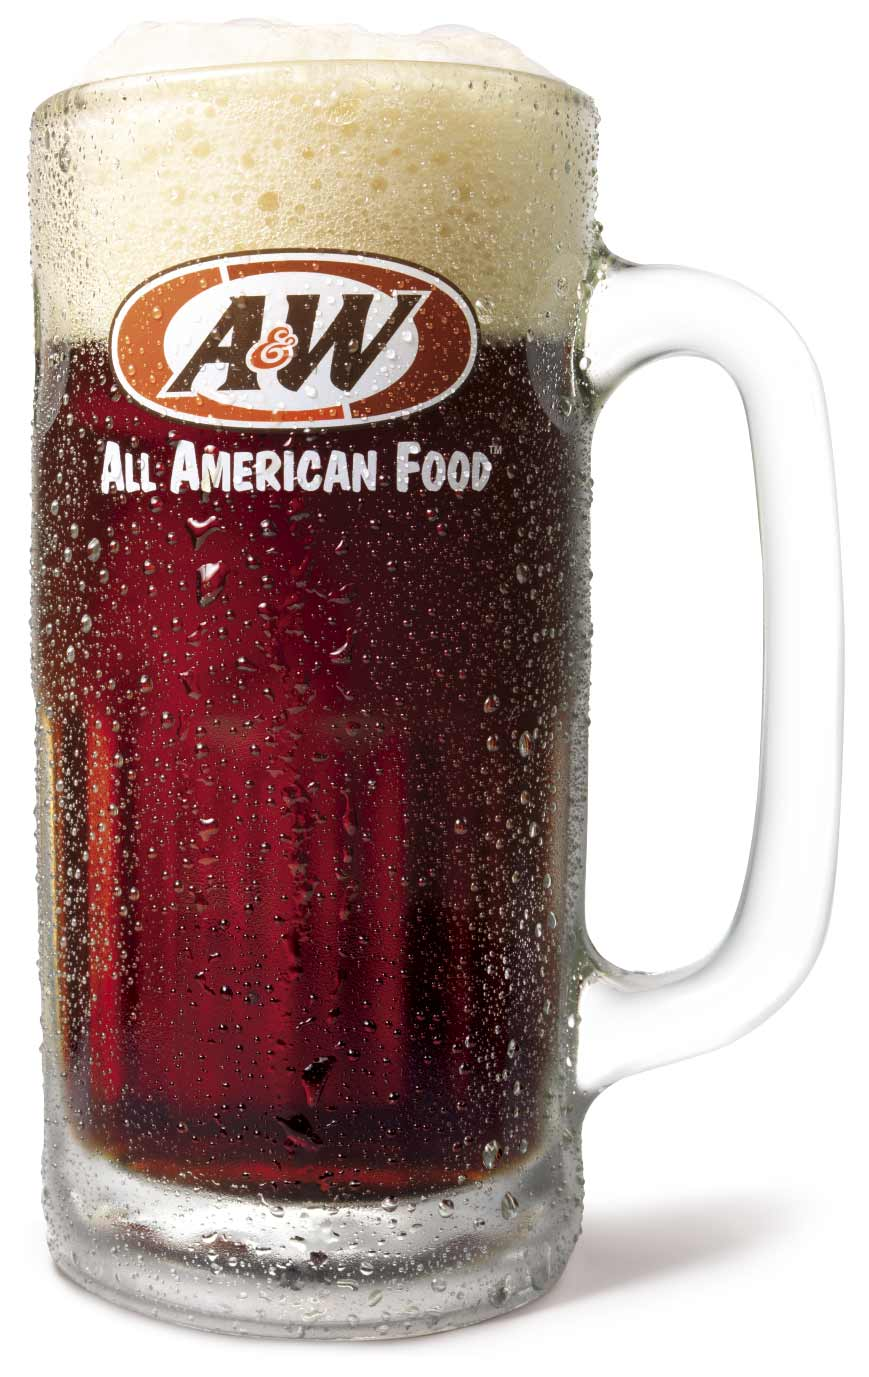 A&W All-American Food, Wellington KS